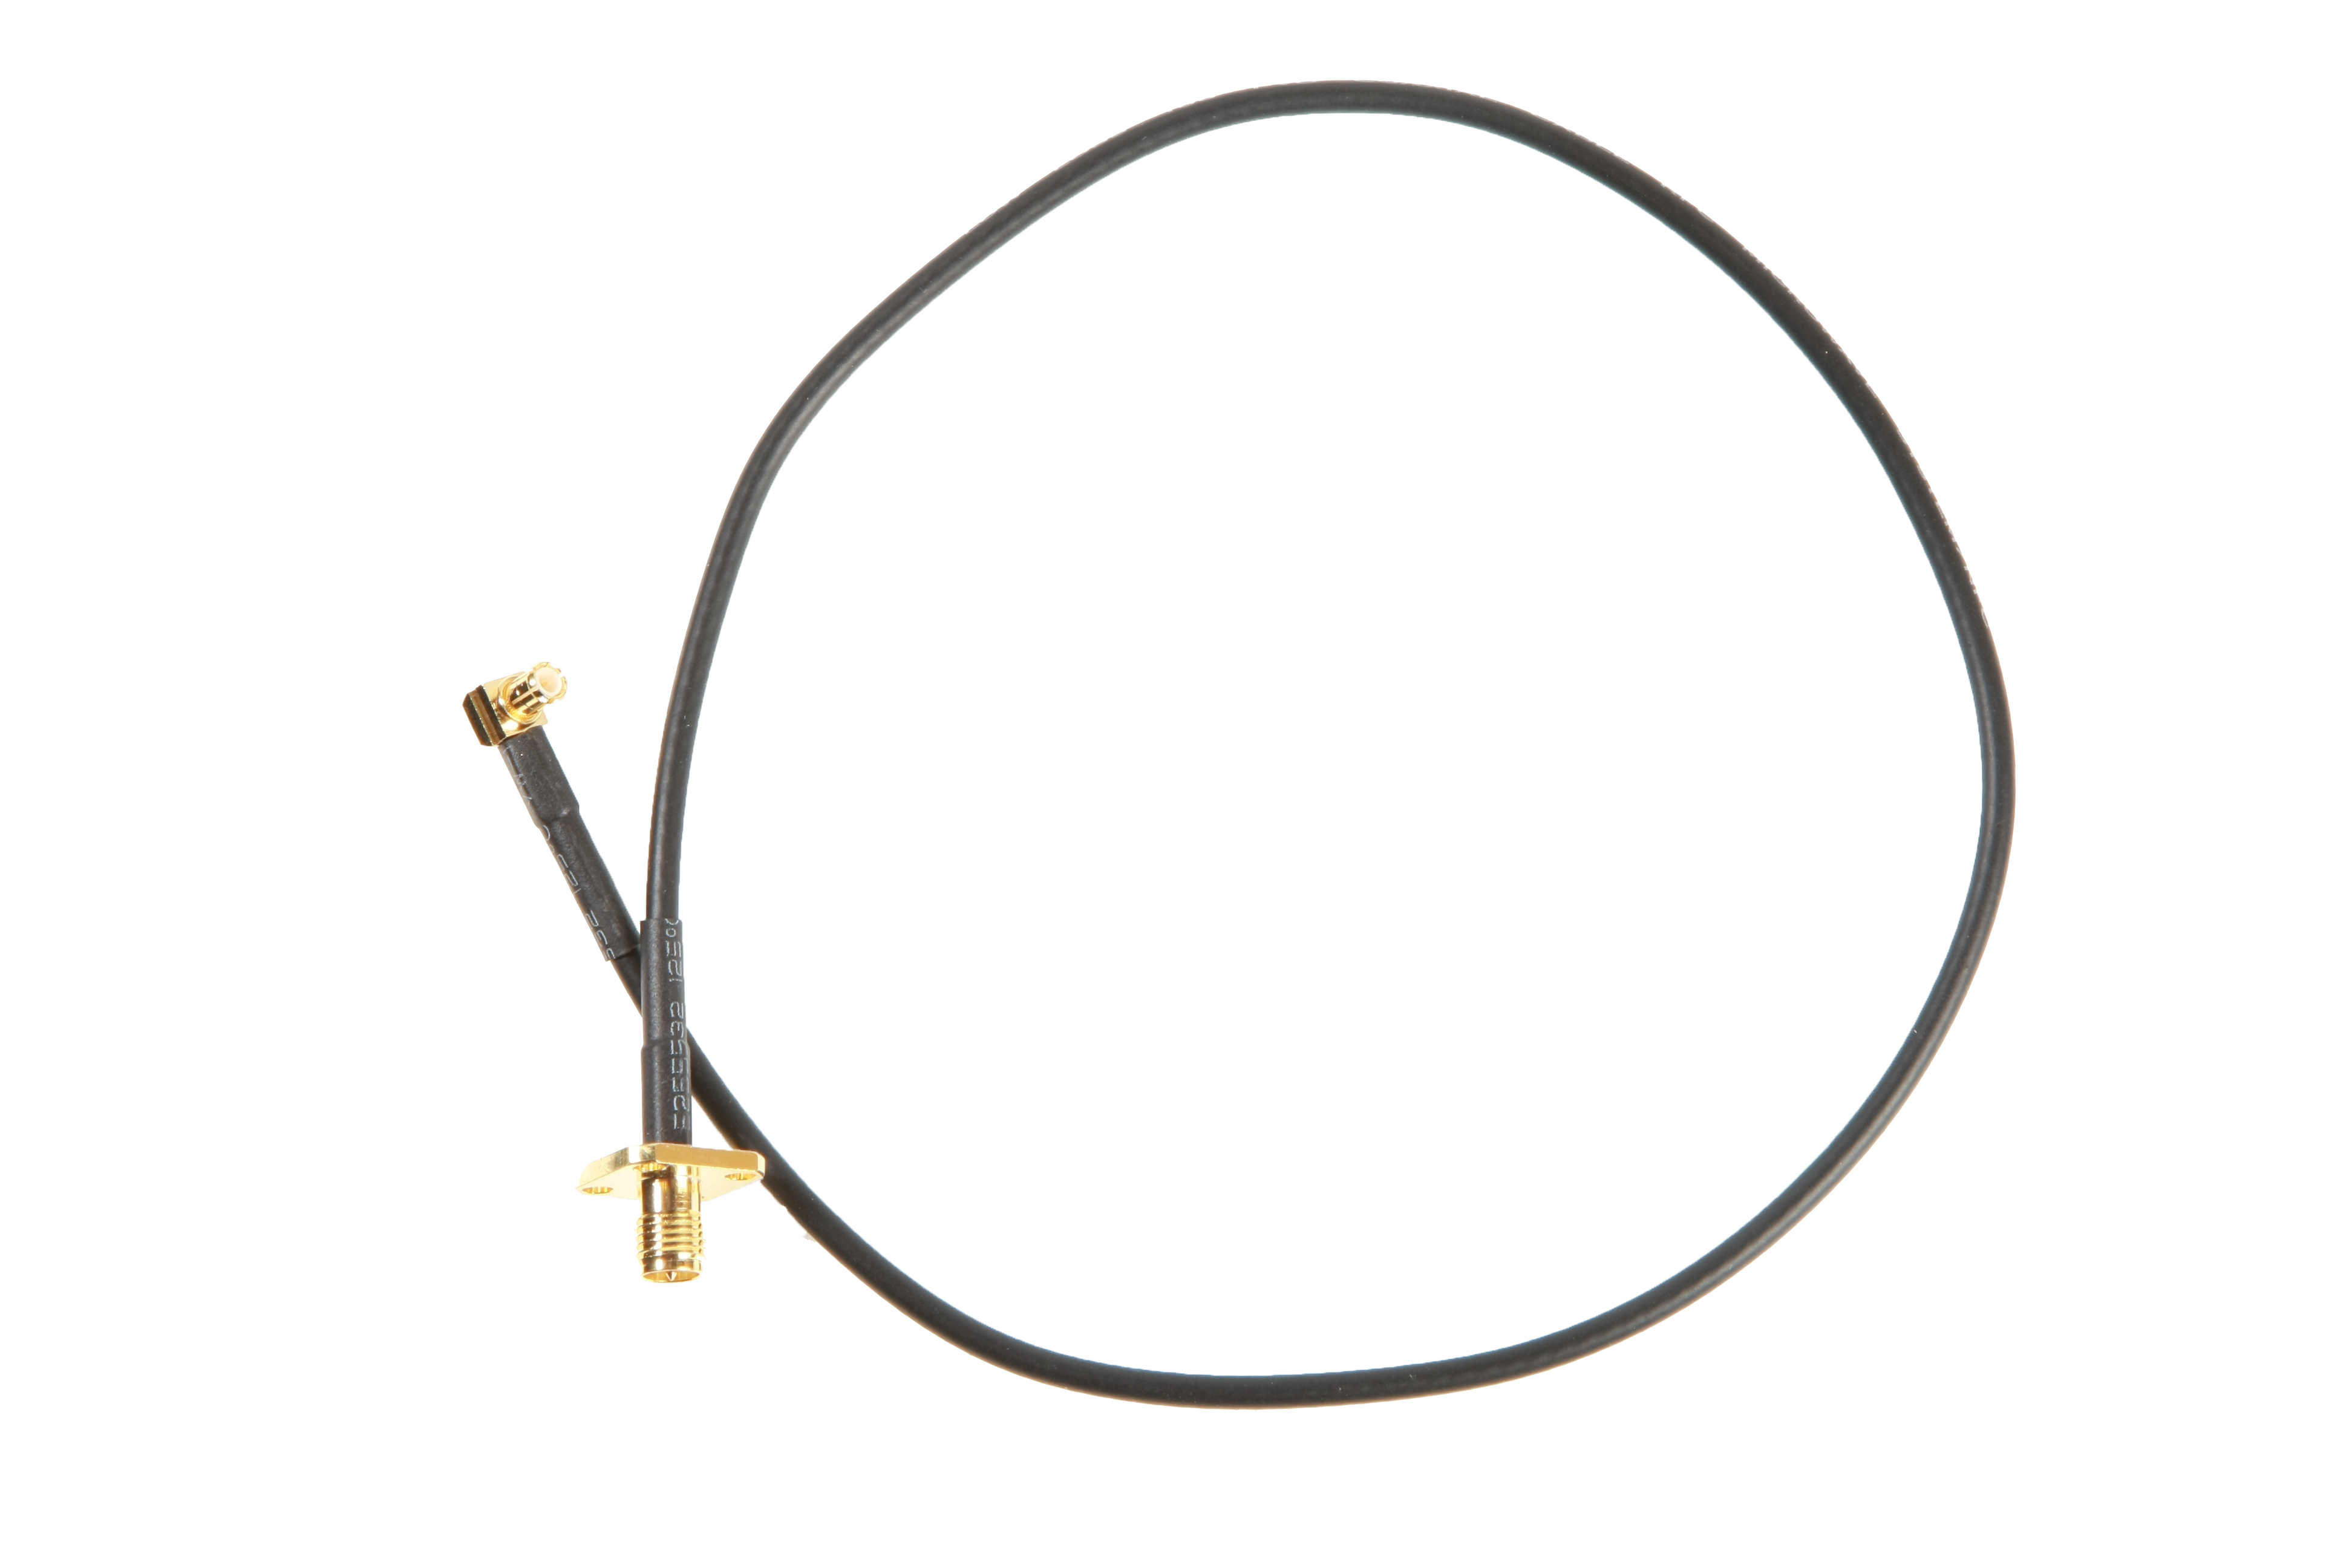 Antenna Cable MCX – RP-SMA Chassi Connector, 40 cm